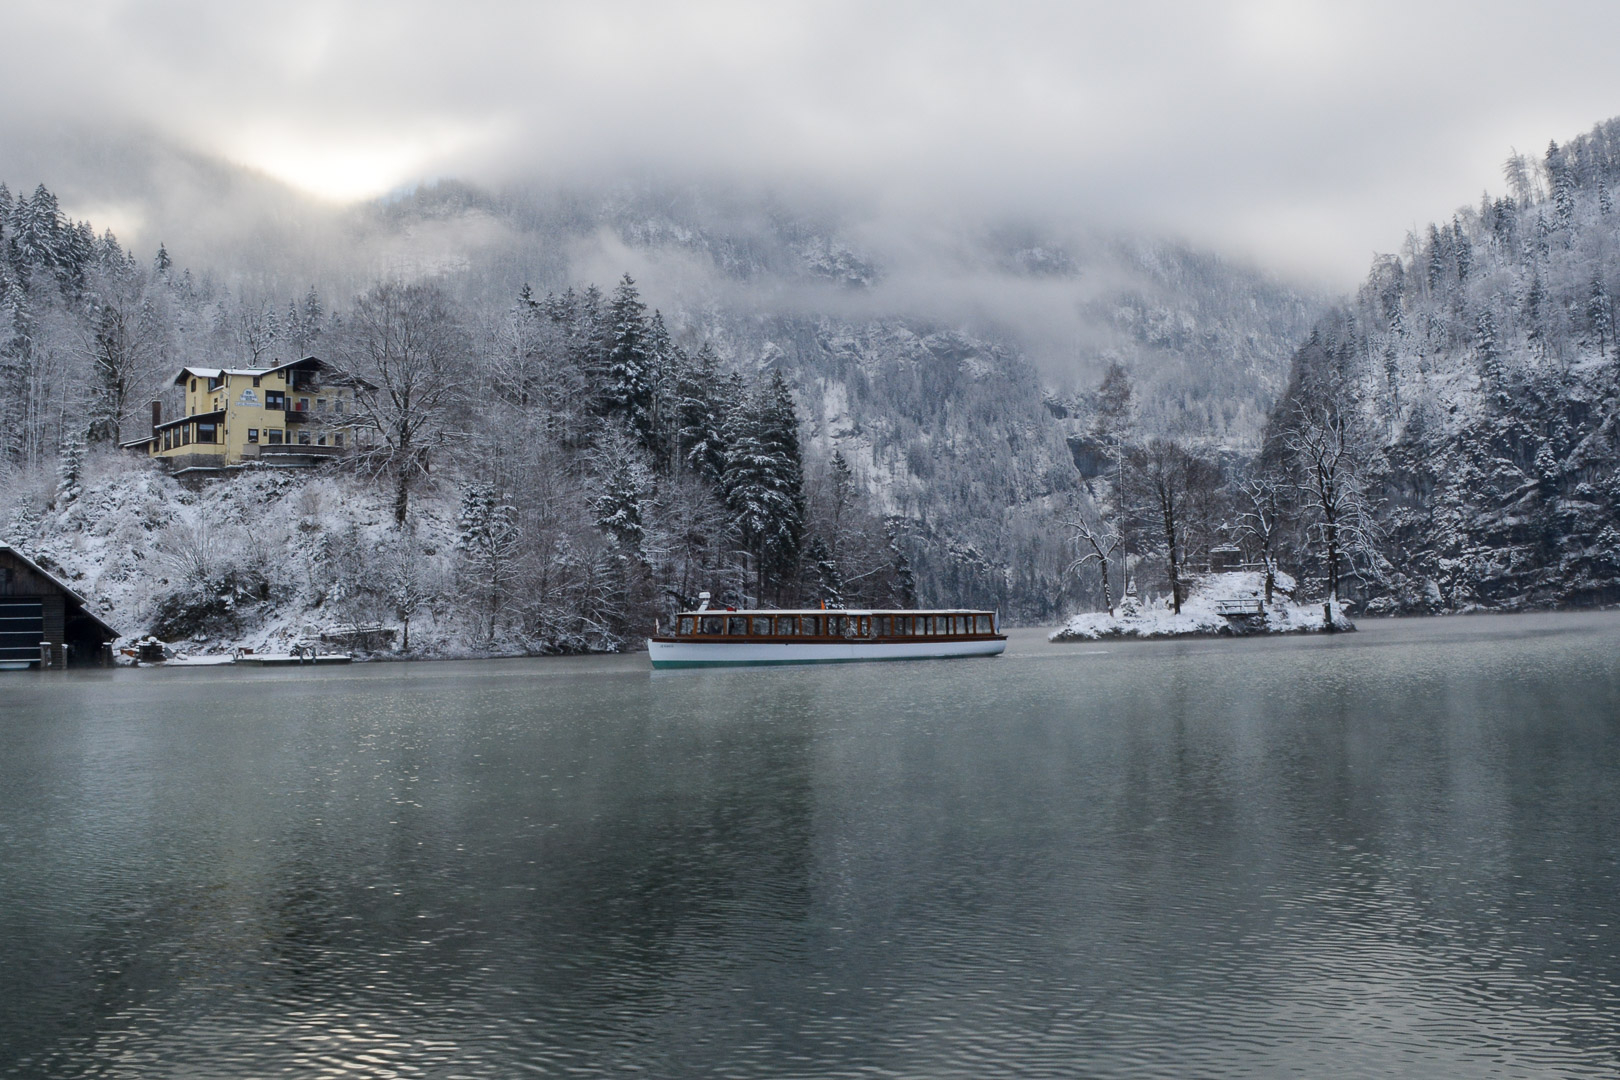 A ferry making its journey across the lake